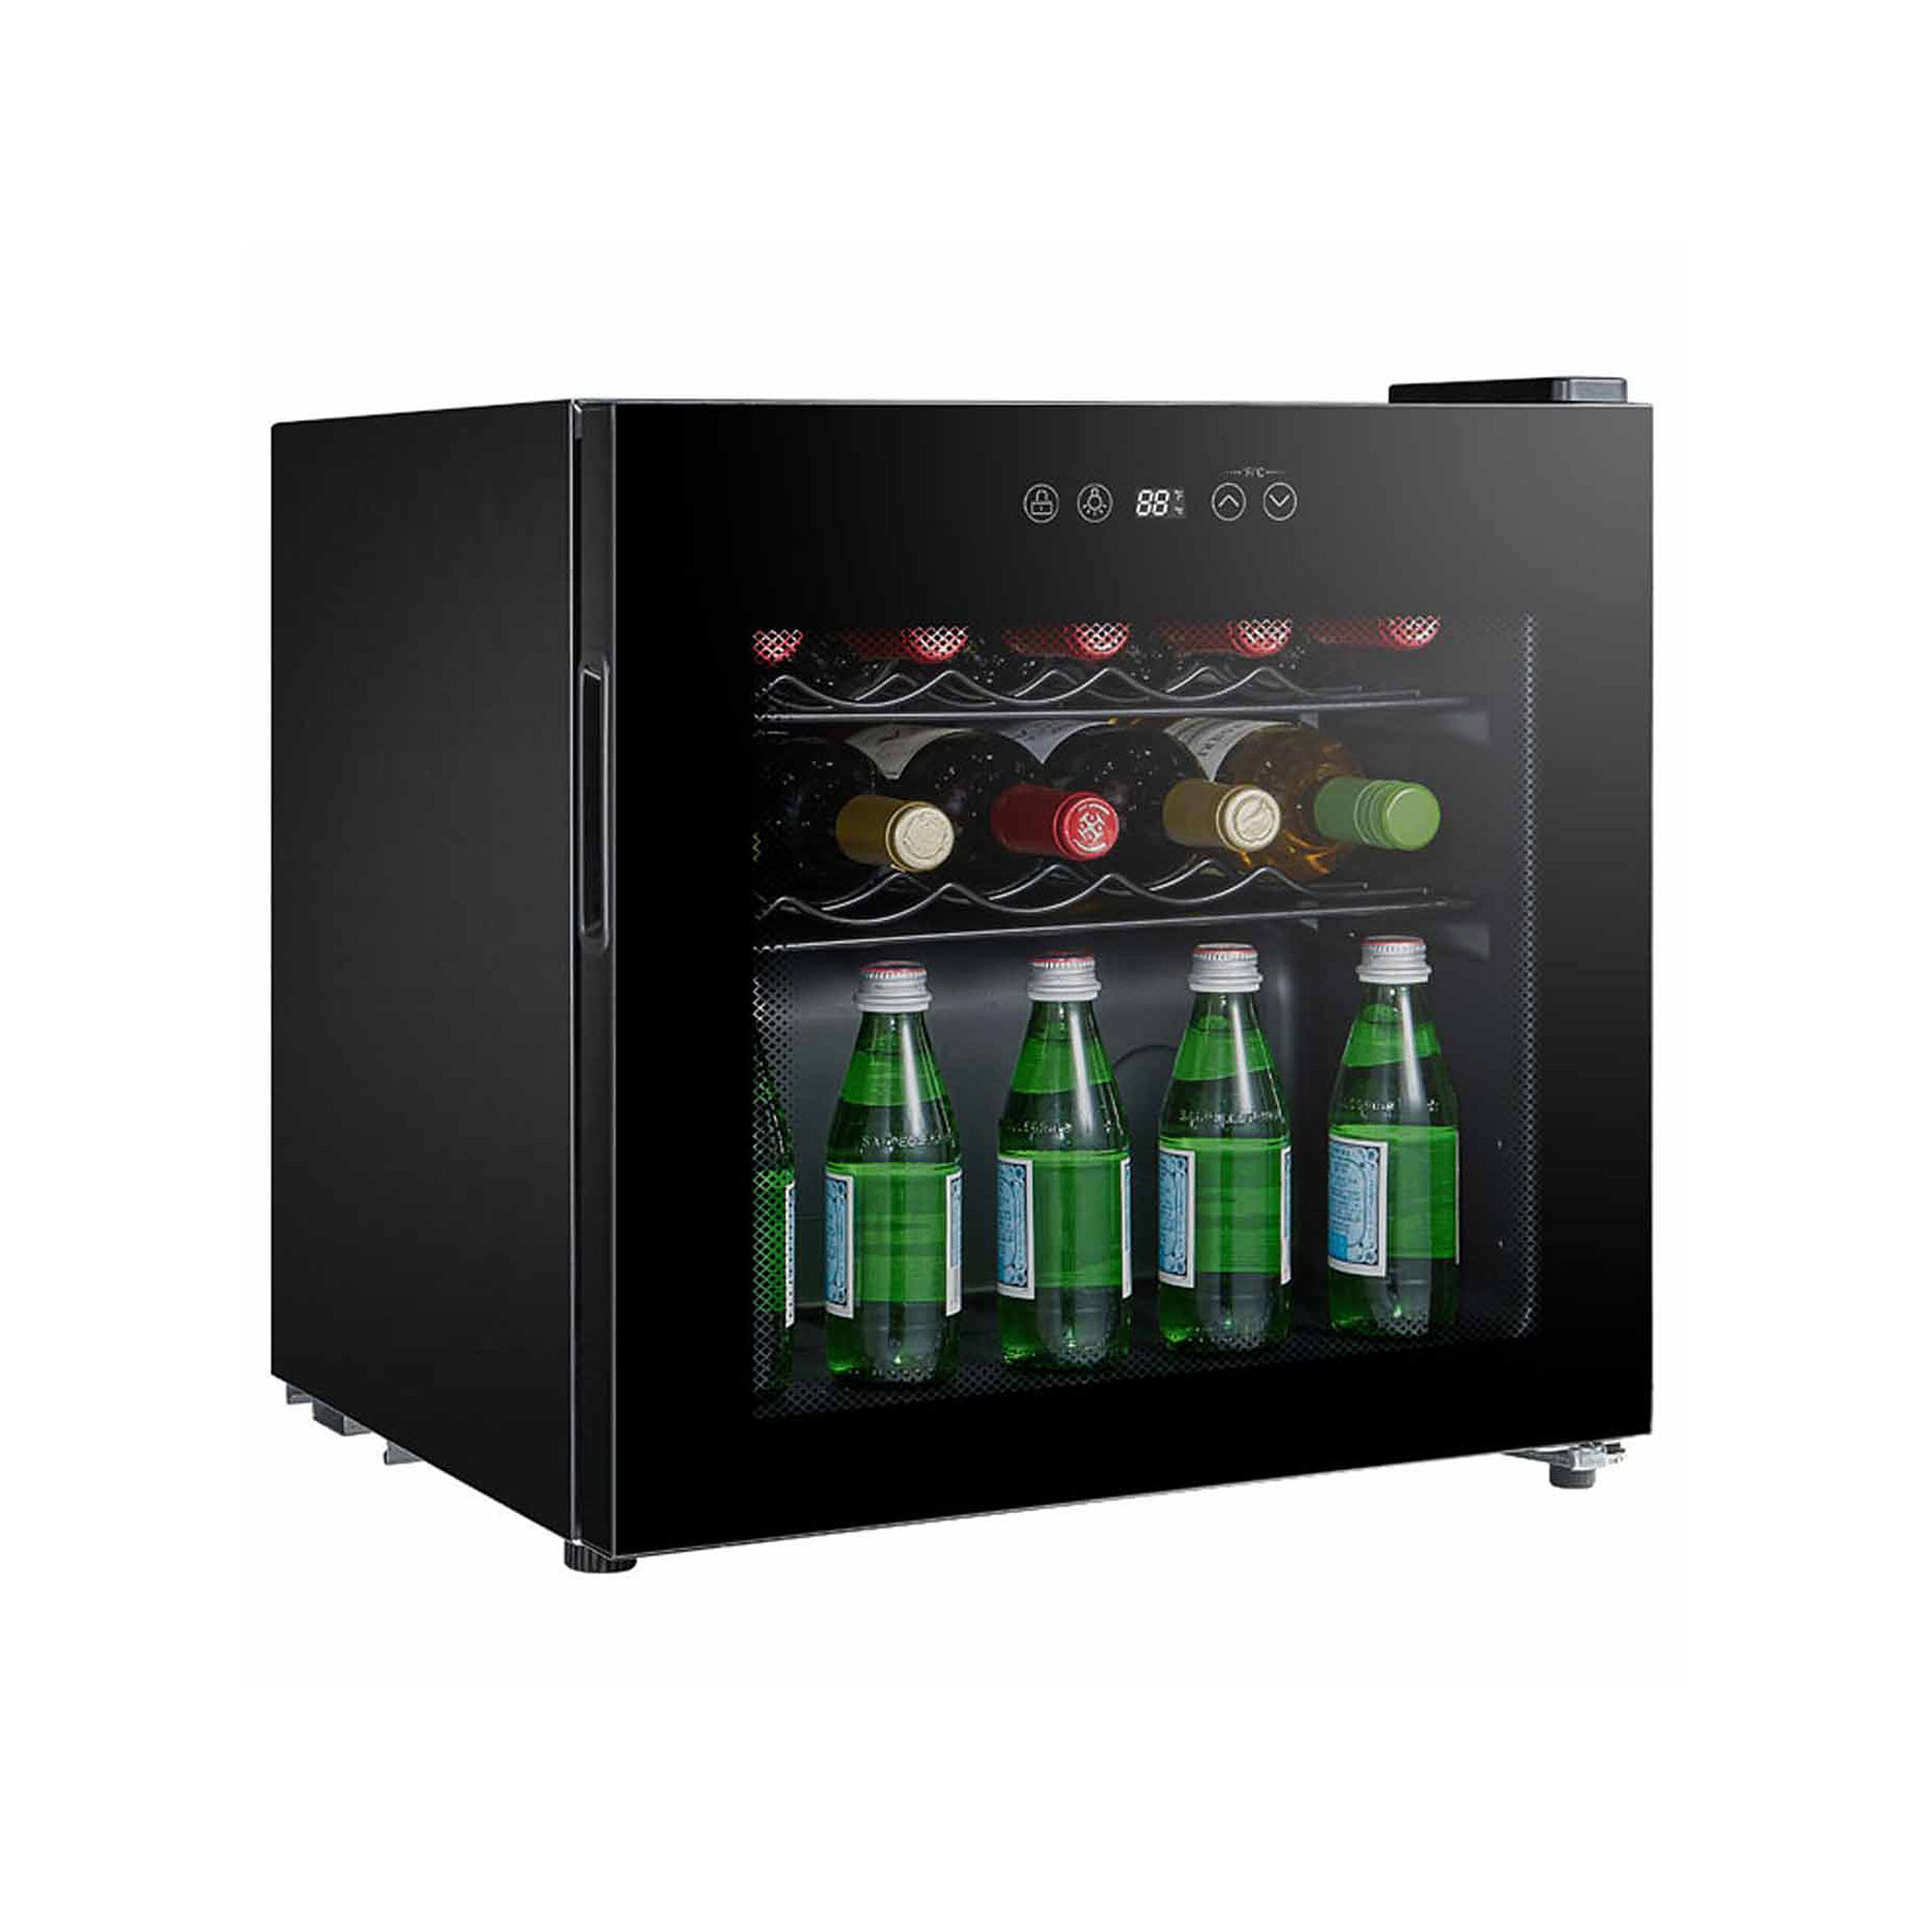 SPT WC-1686C: Single Zone Compressor Wine Cooler 16-bottles